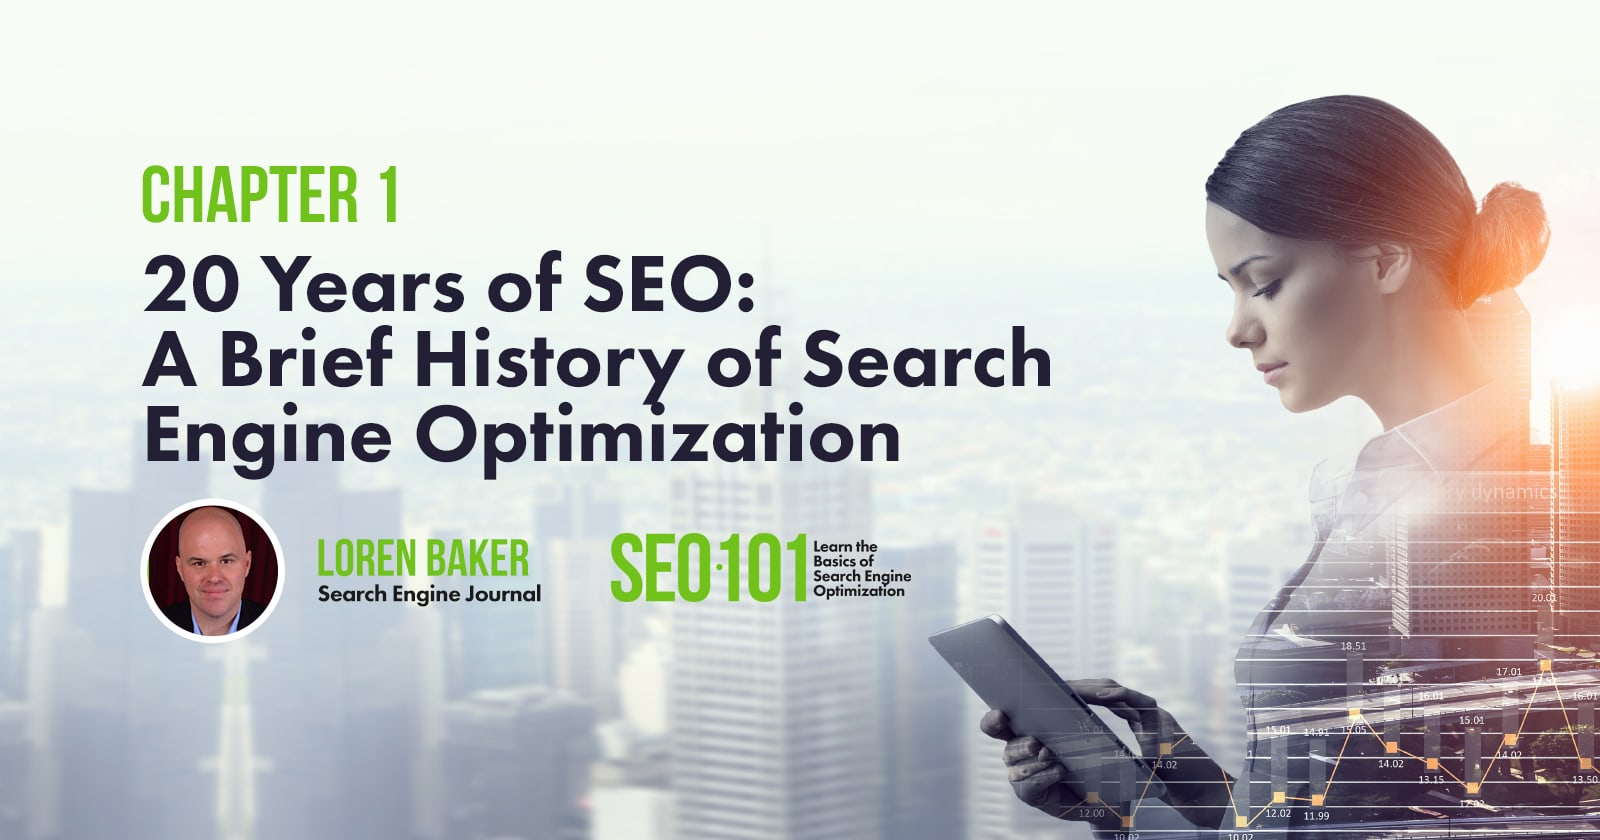 20 Years of SEO: A Brief History of Search Engine Optimization by @lorenbaker